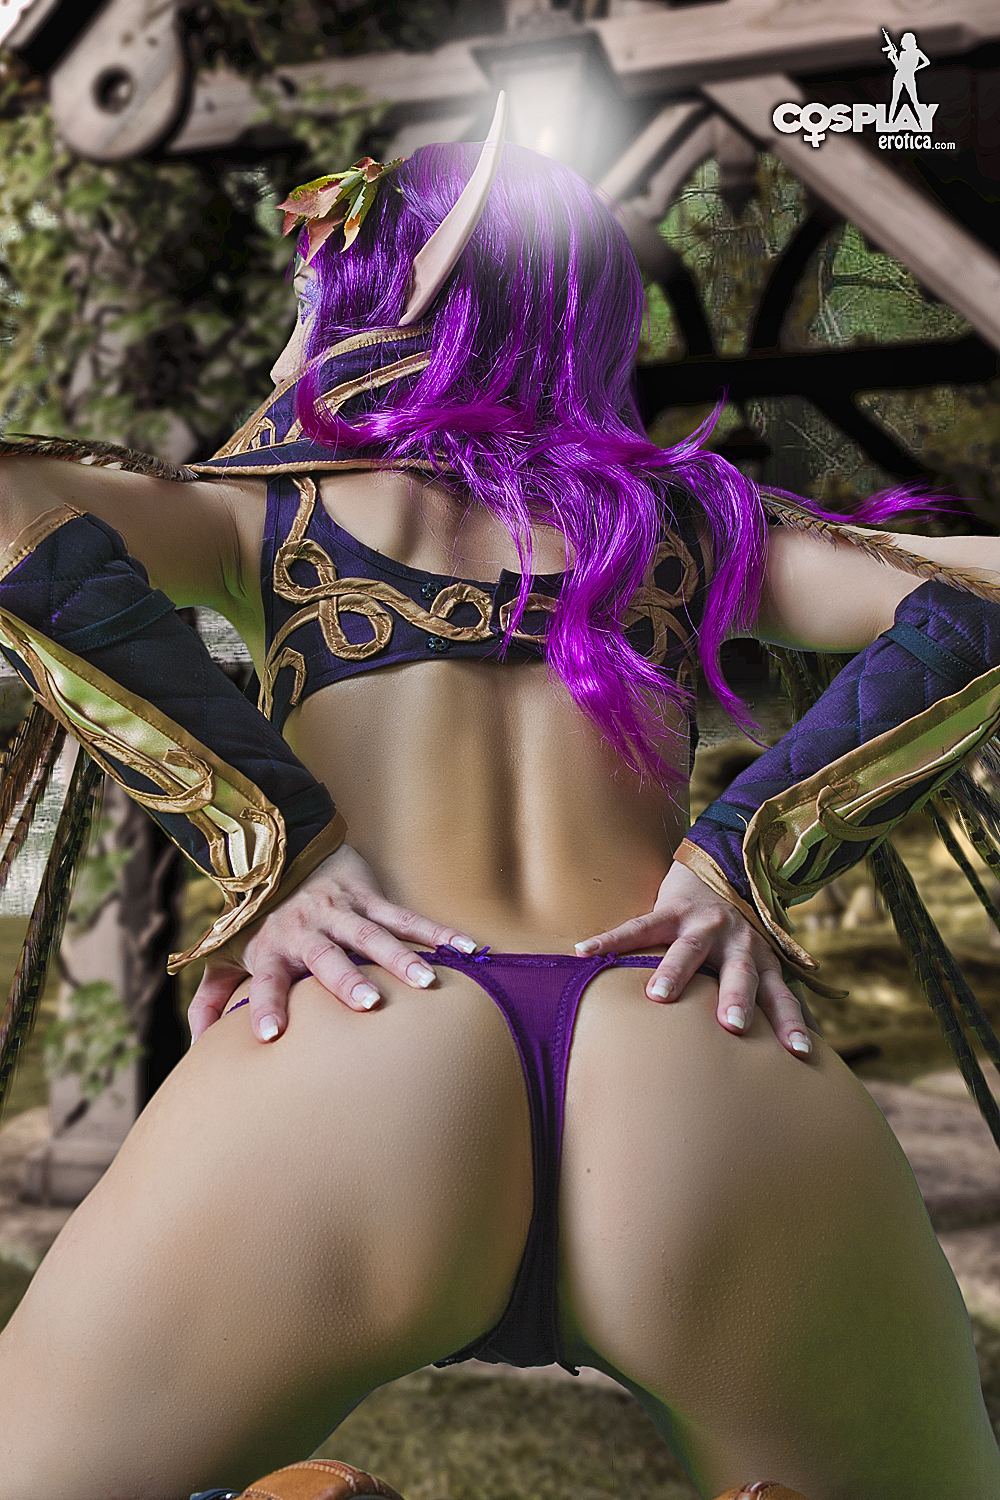 Warcraft cosplay porn pictures naked picture